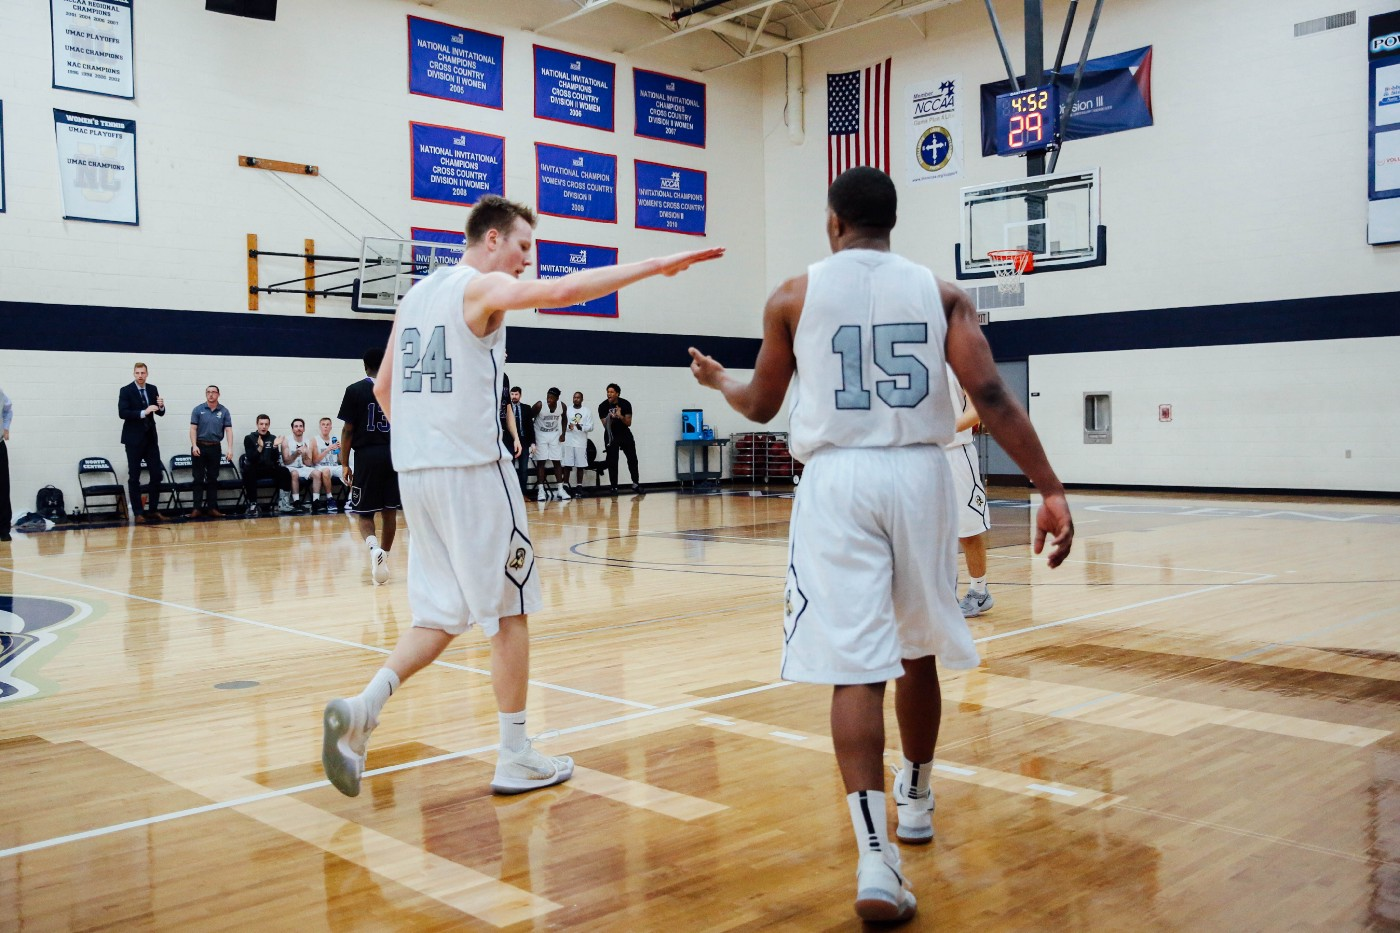 Two basketball players high-fiving each other on a basketball court